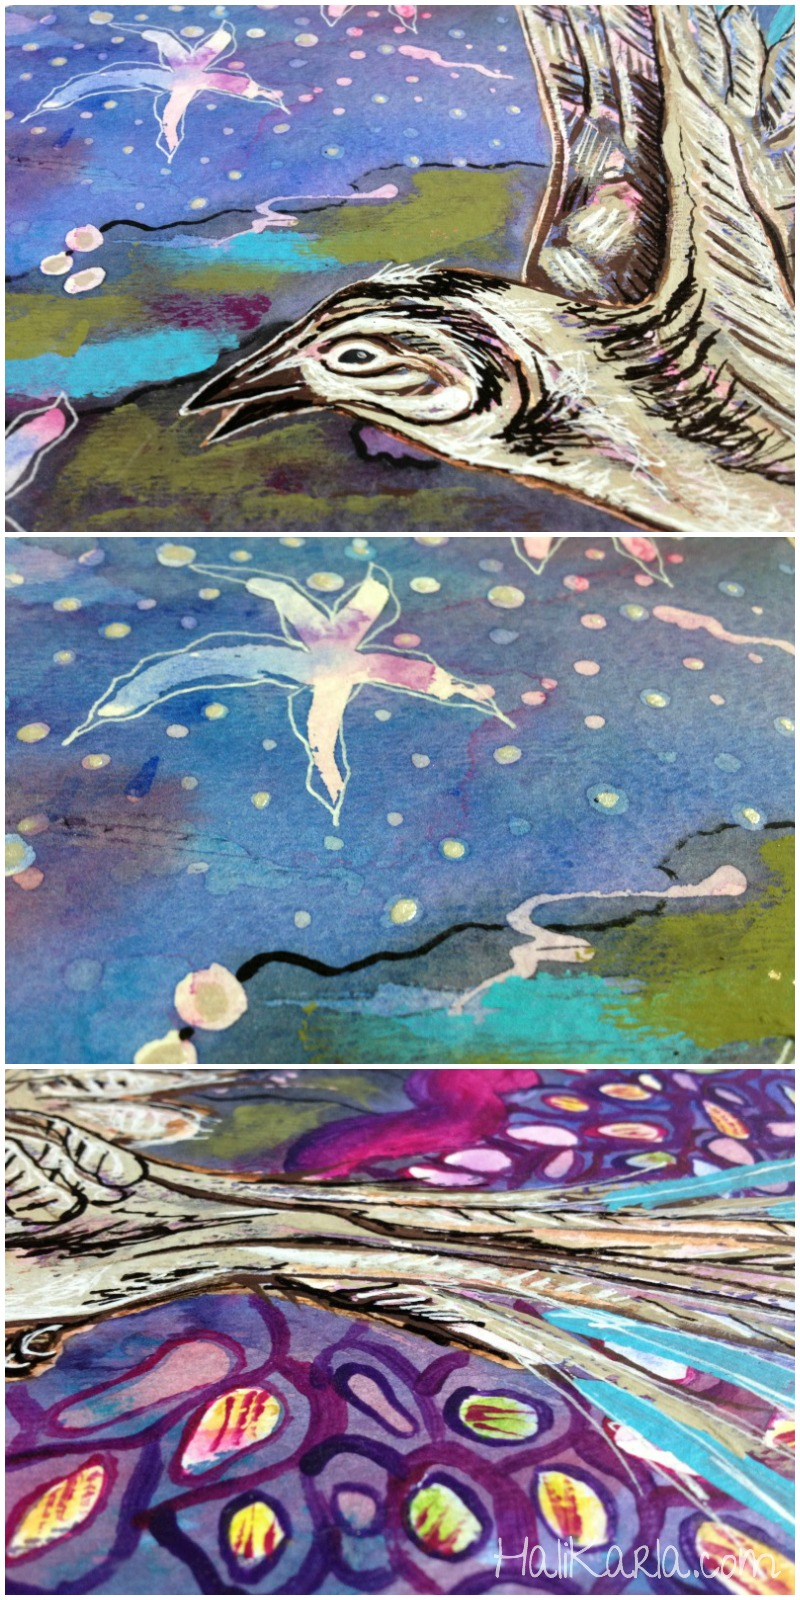 watercolor with resist, spirit bird detail, Hali Karla